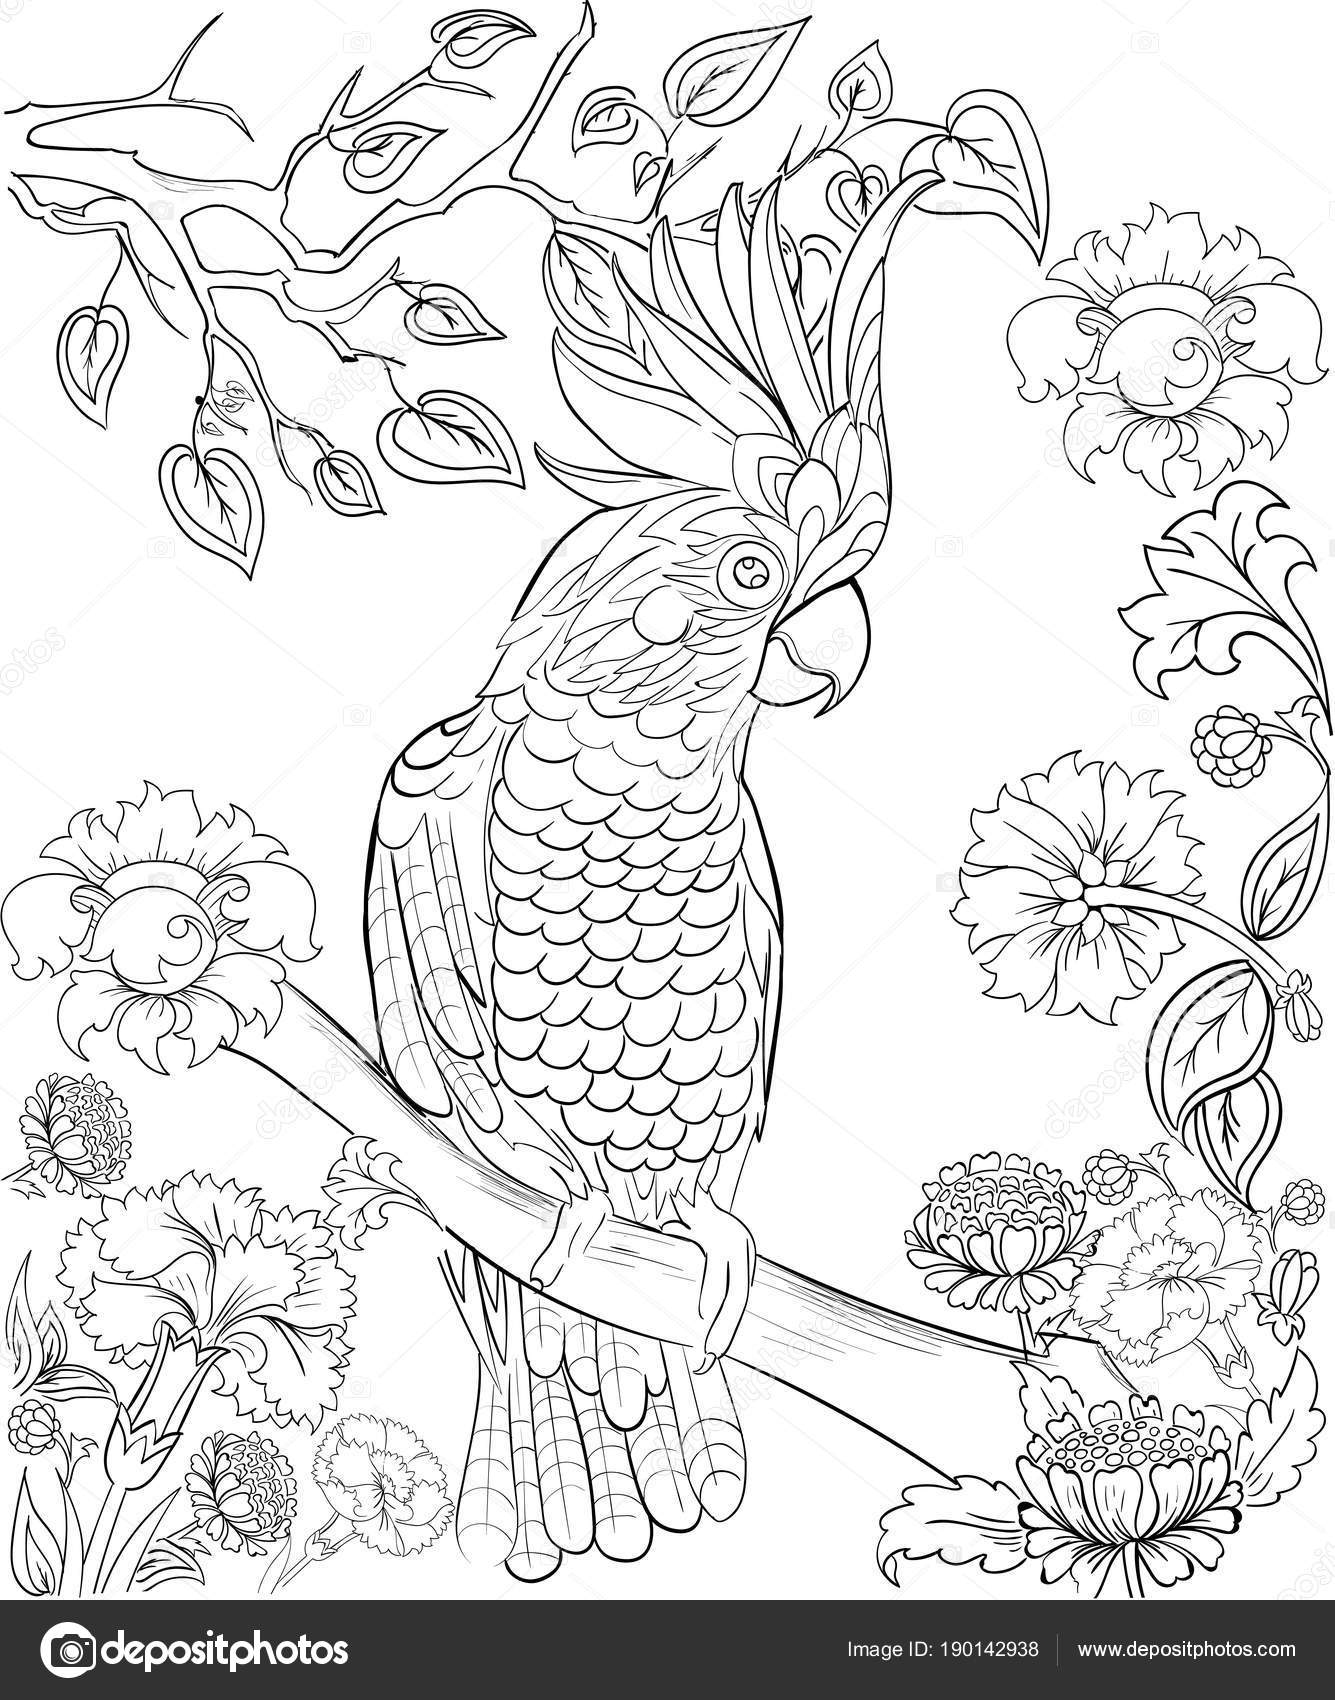 Cockatoo Parrot For Coloring Book Anti Stress Adult Tattoo Stencil